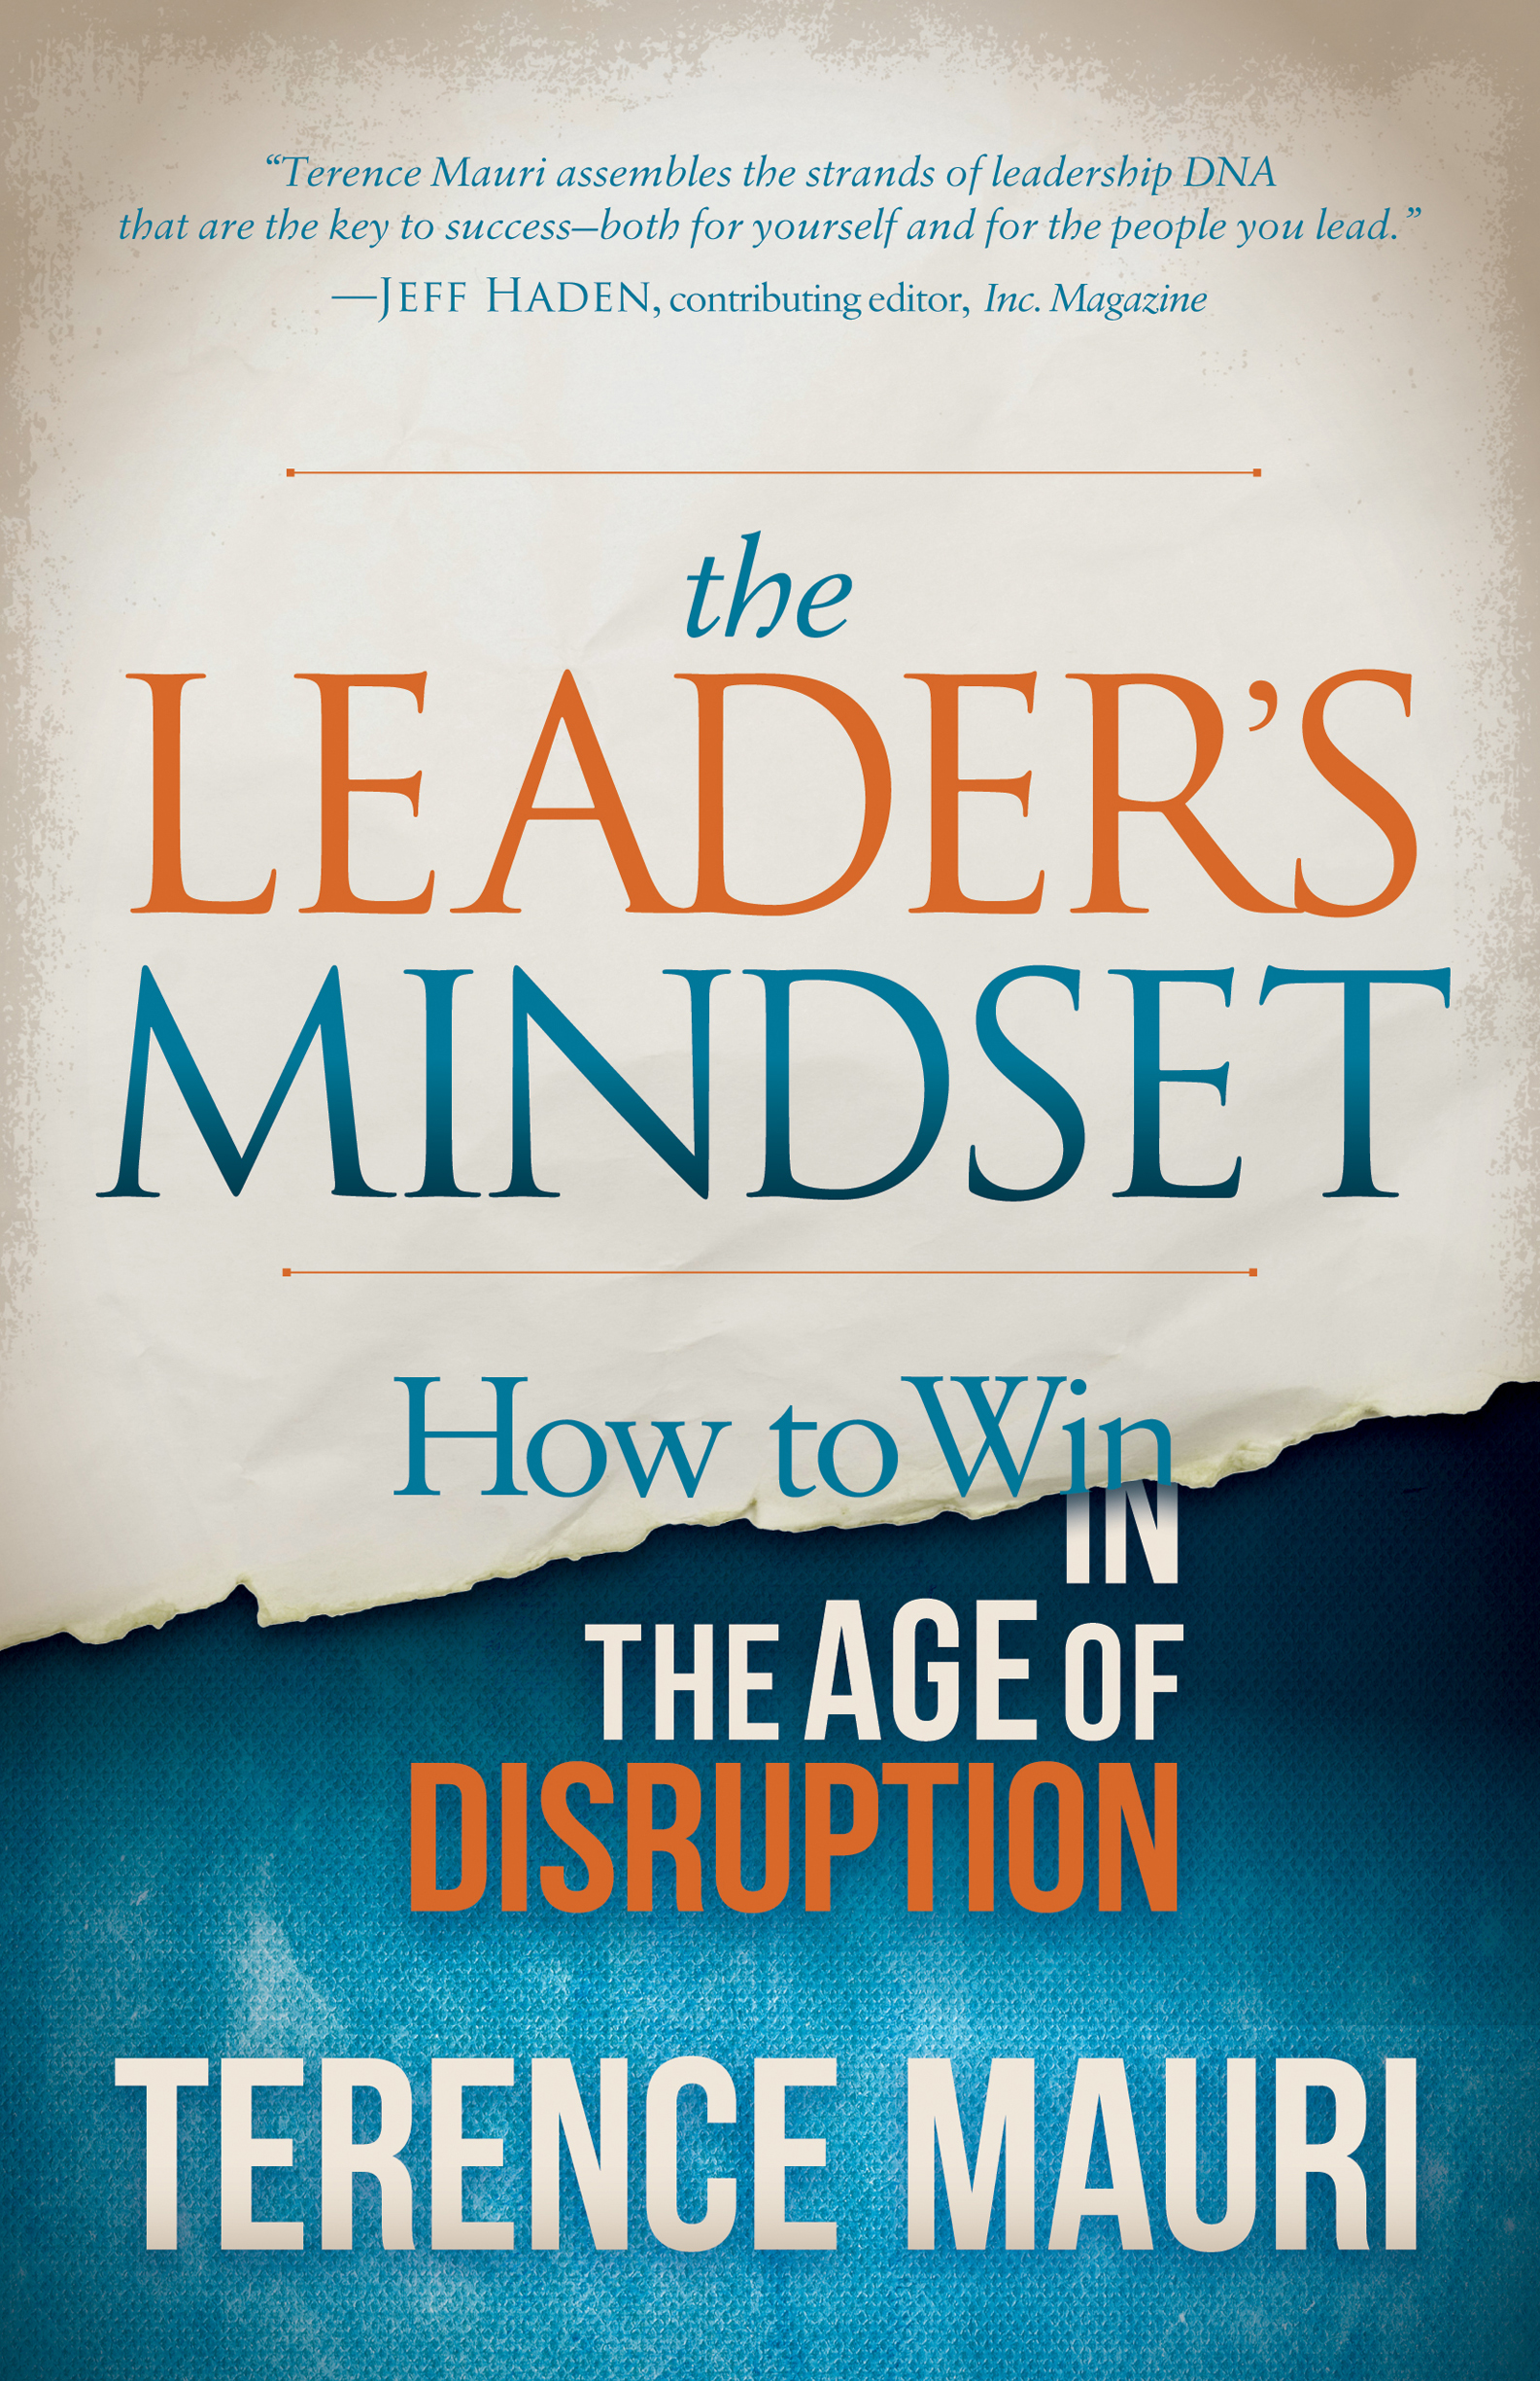 The Leaders Mindset by Terence Mauri